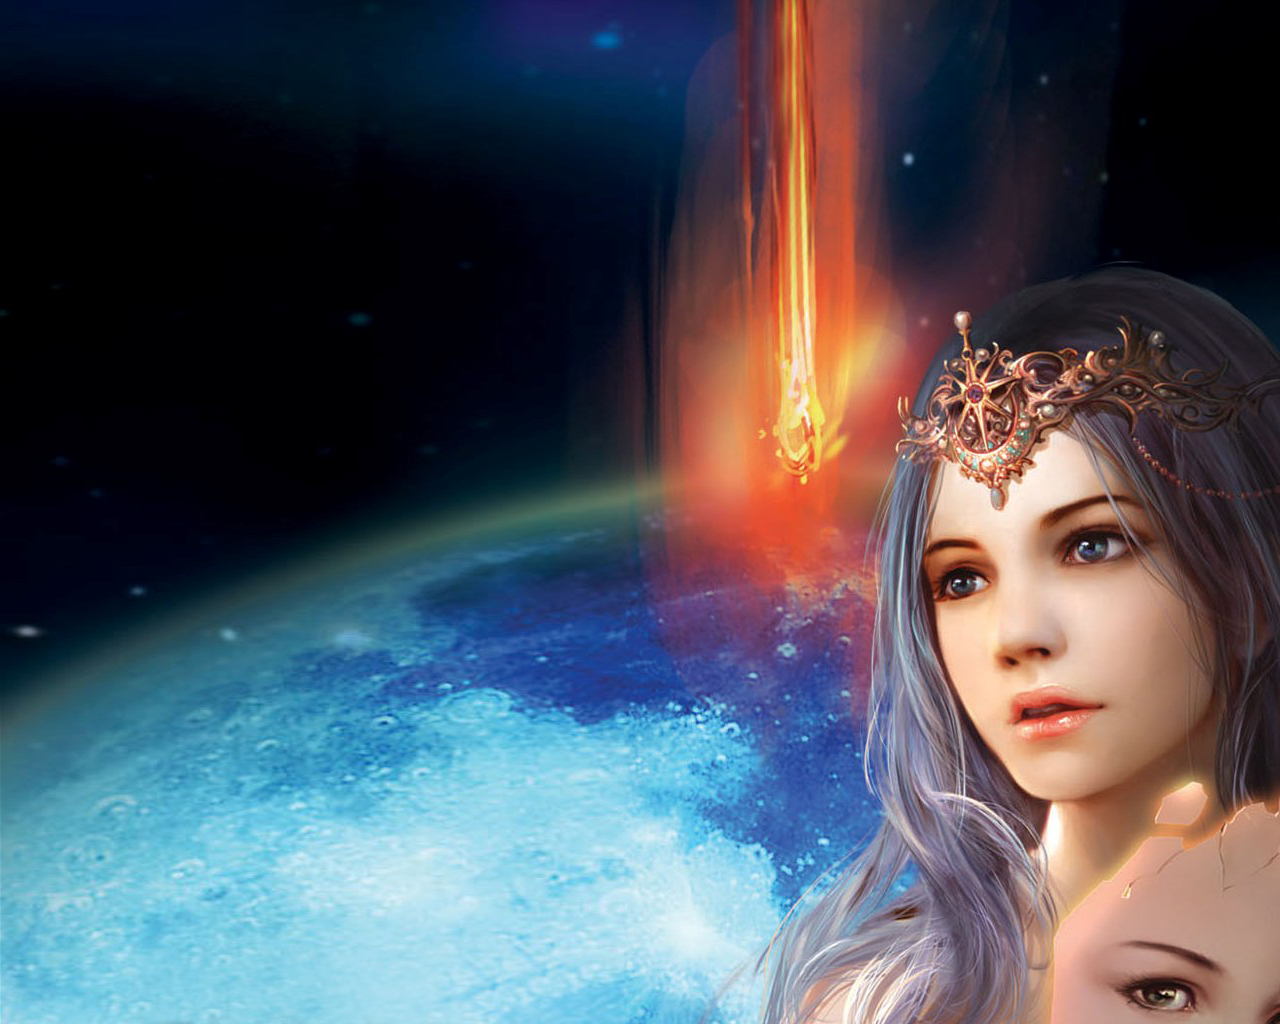 Magical Fantasy Hd Wallpapers That Will Take Your Breathe: HD Desktop Wallpapers Free Online: Breath